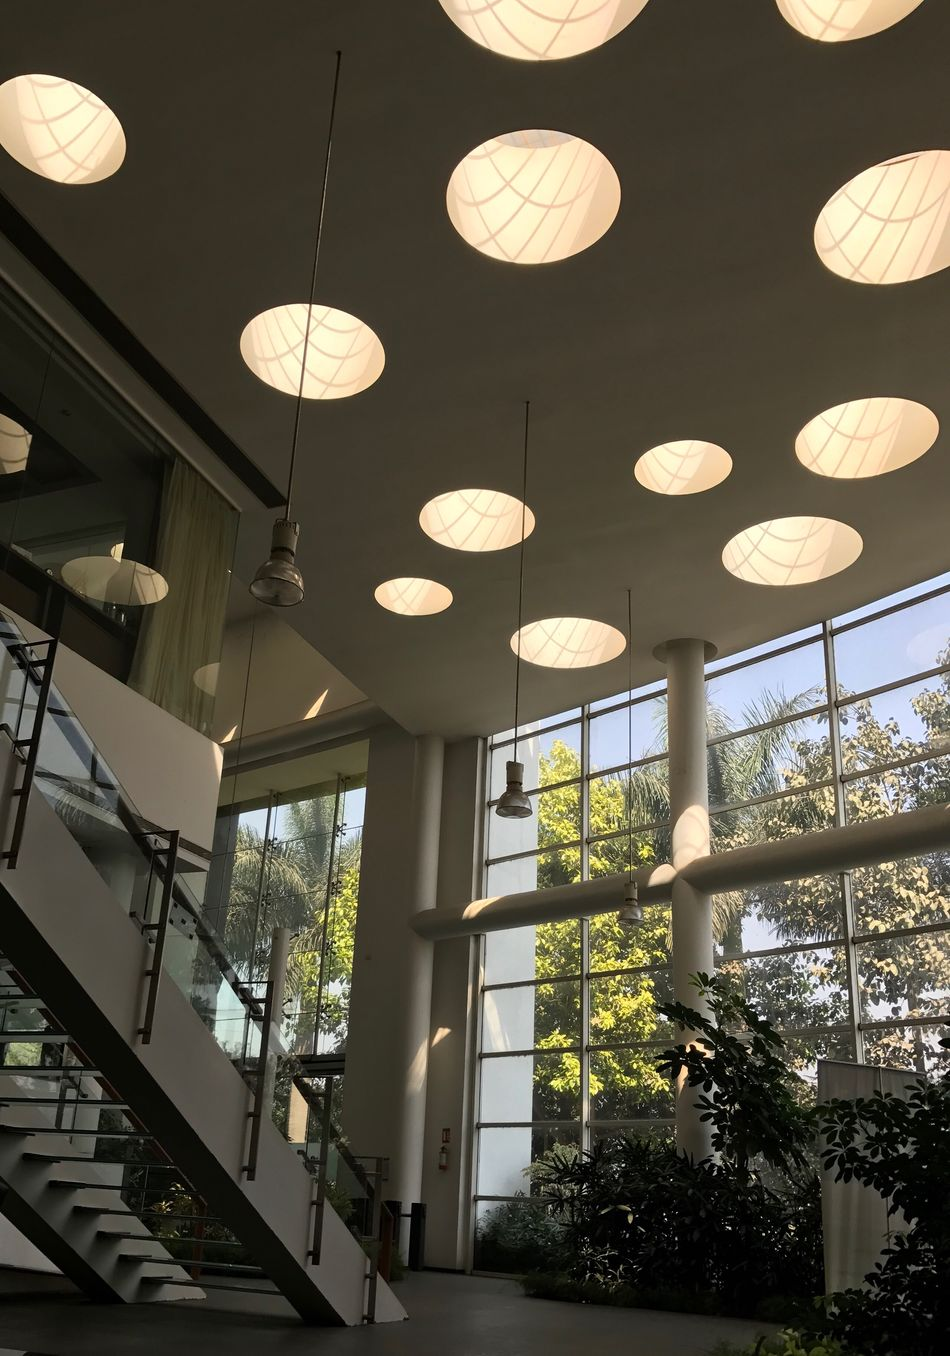 The City Light Office Office Building Architecture Indoors  No People Tree Sunlight ☀ Sunlight, Shades And Shadows EyeEmNewHere Indoor Hanginglights Ceiling Design Ceiling Architecture Ceiling Lighting Ceiling Window